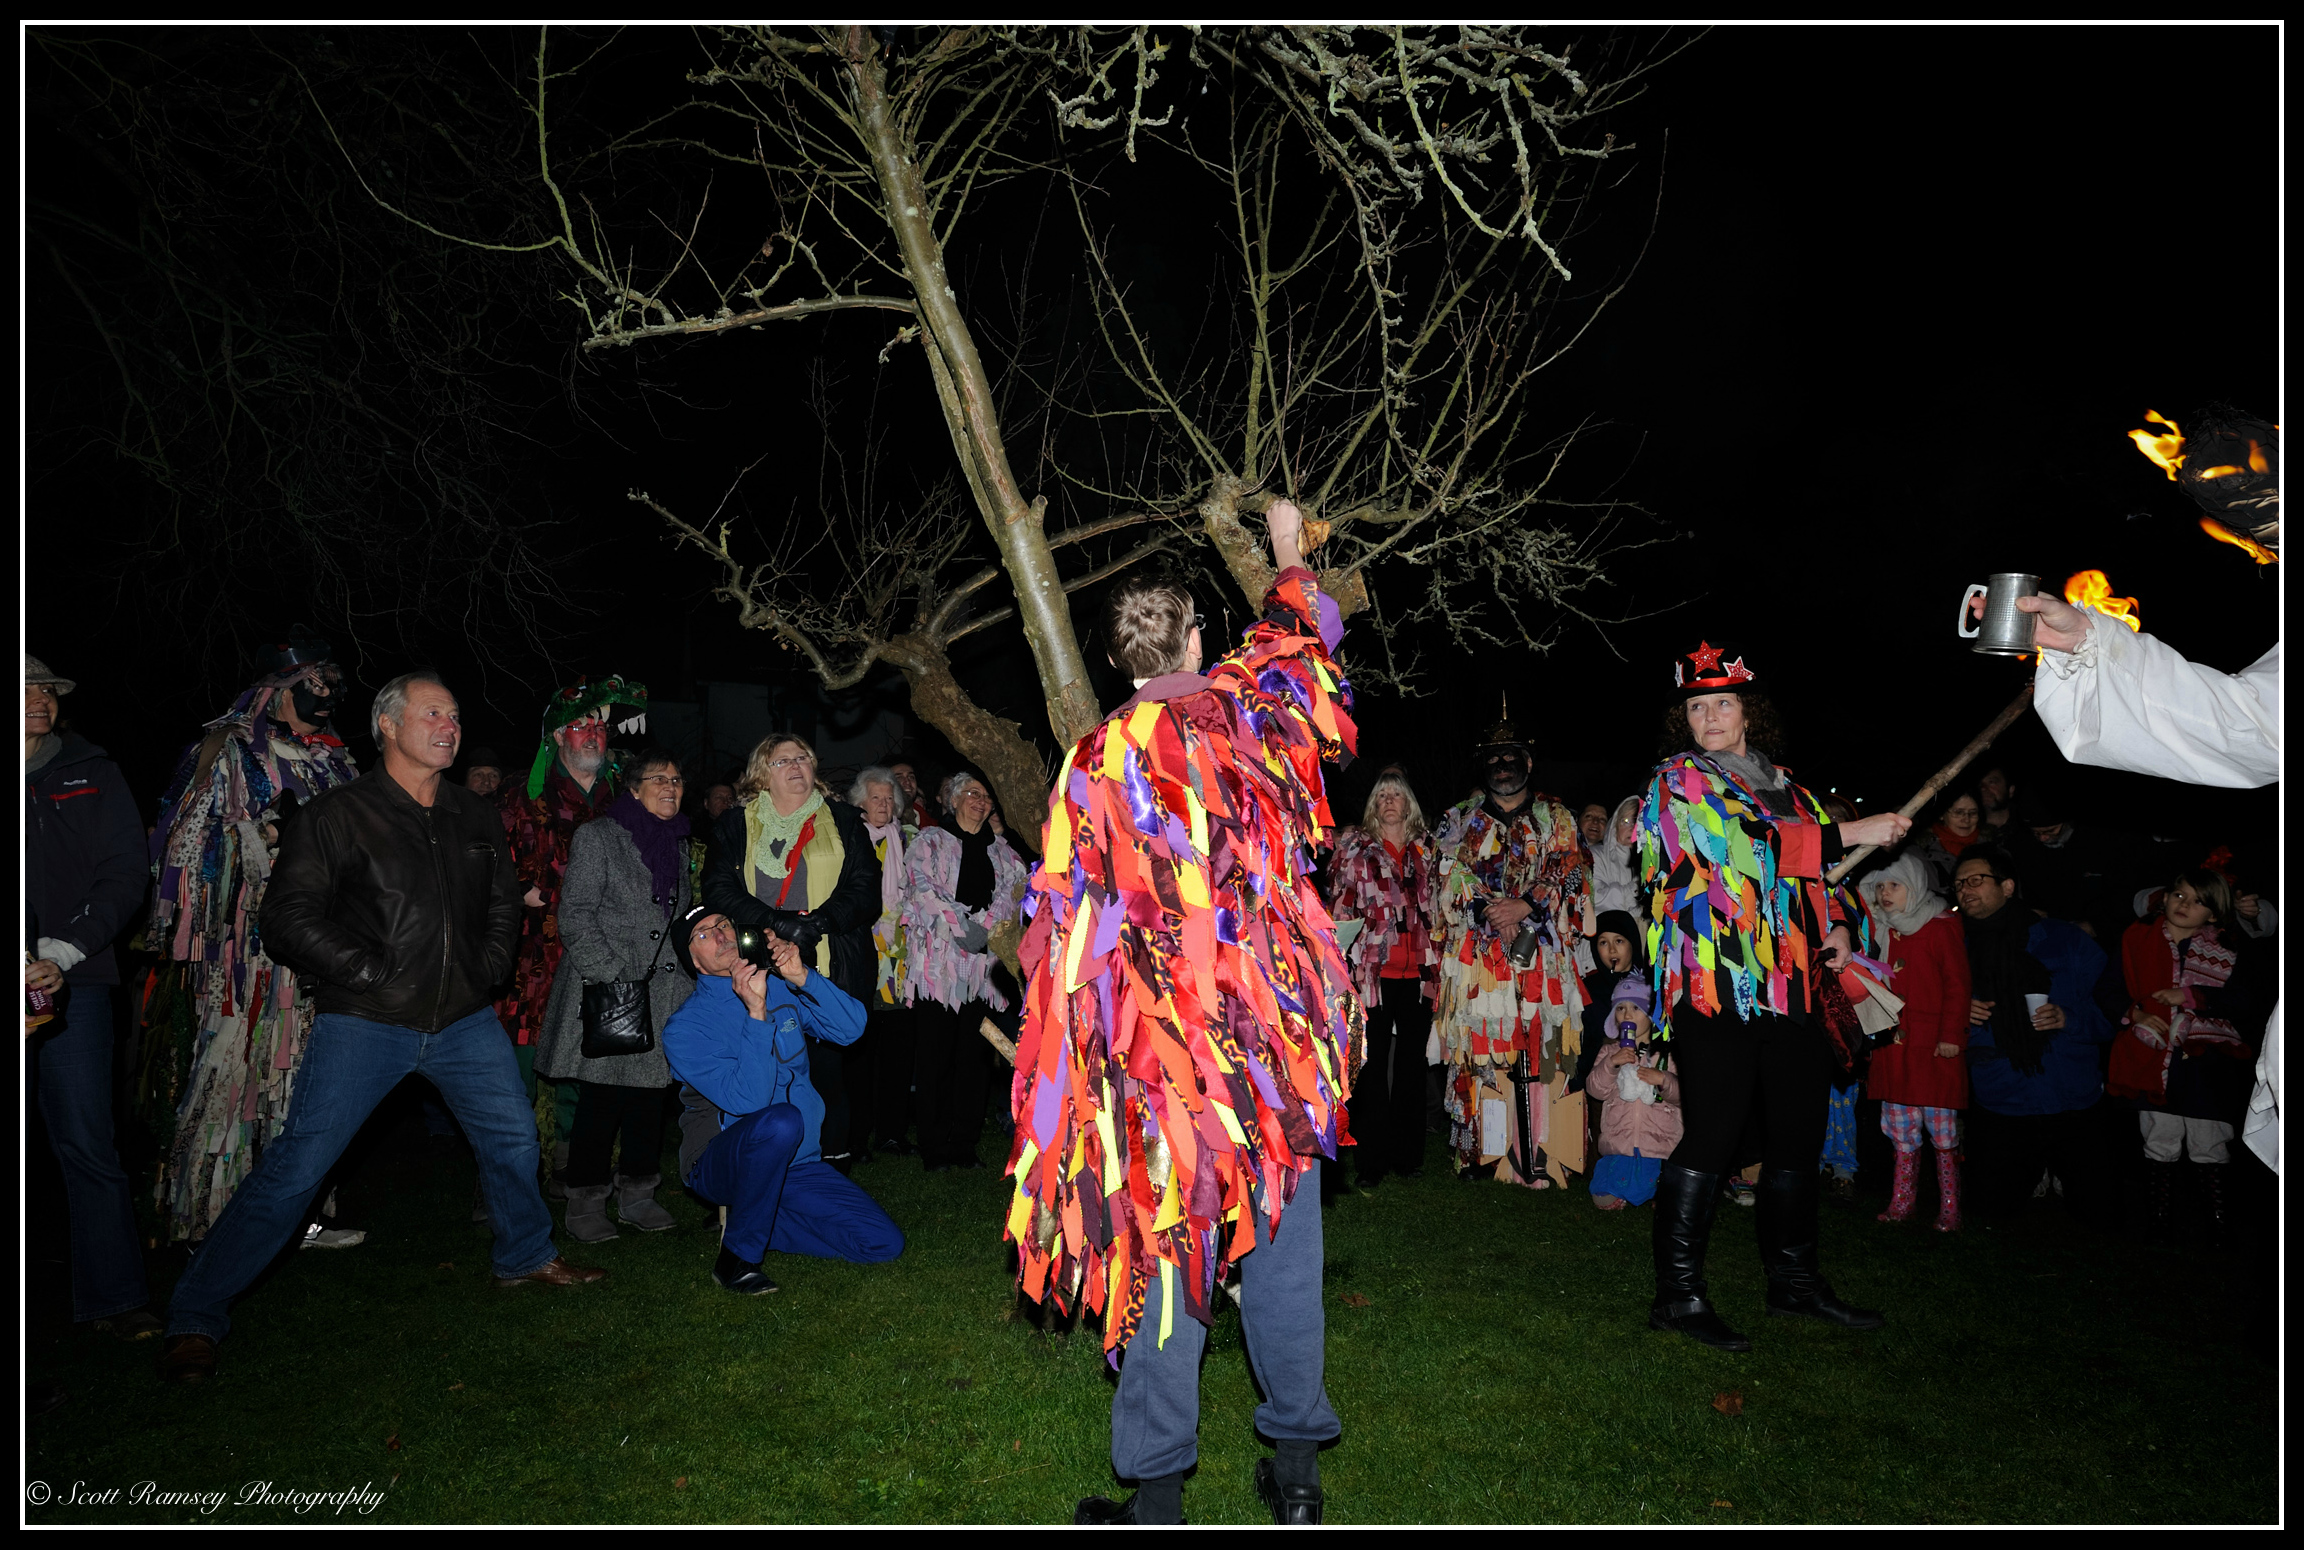 During the Wassail in Tarring village, toast is placed in the branchesof a tree for winter robins to eat andcarry off any bad spirits.